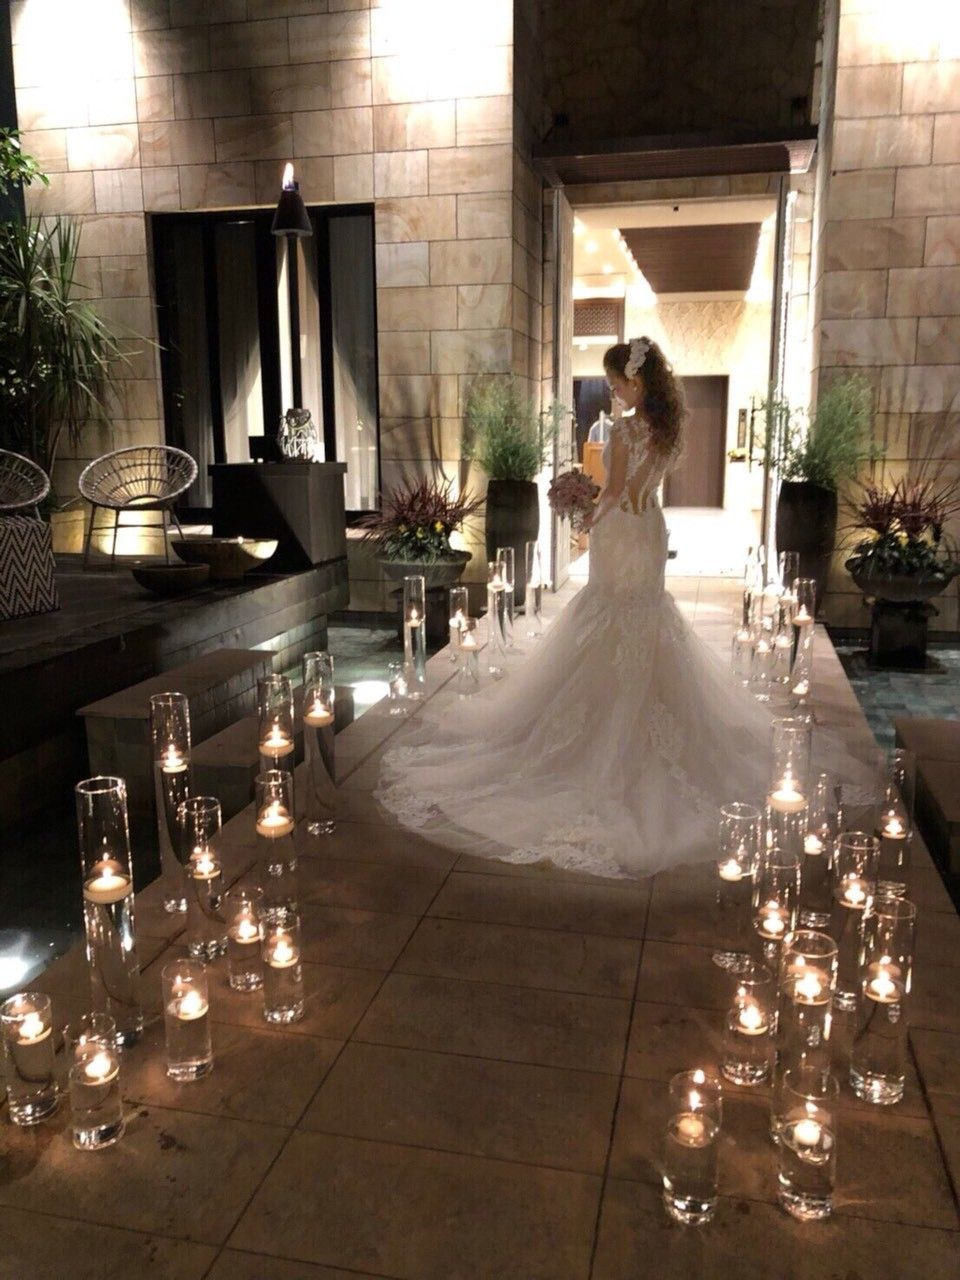 Wedding decorations tulle and lights october 2018 Adalyn wedding dress by Oksana Mukha   Real brides u Clients